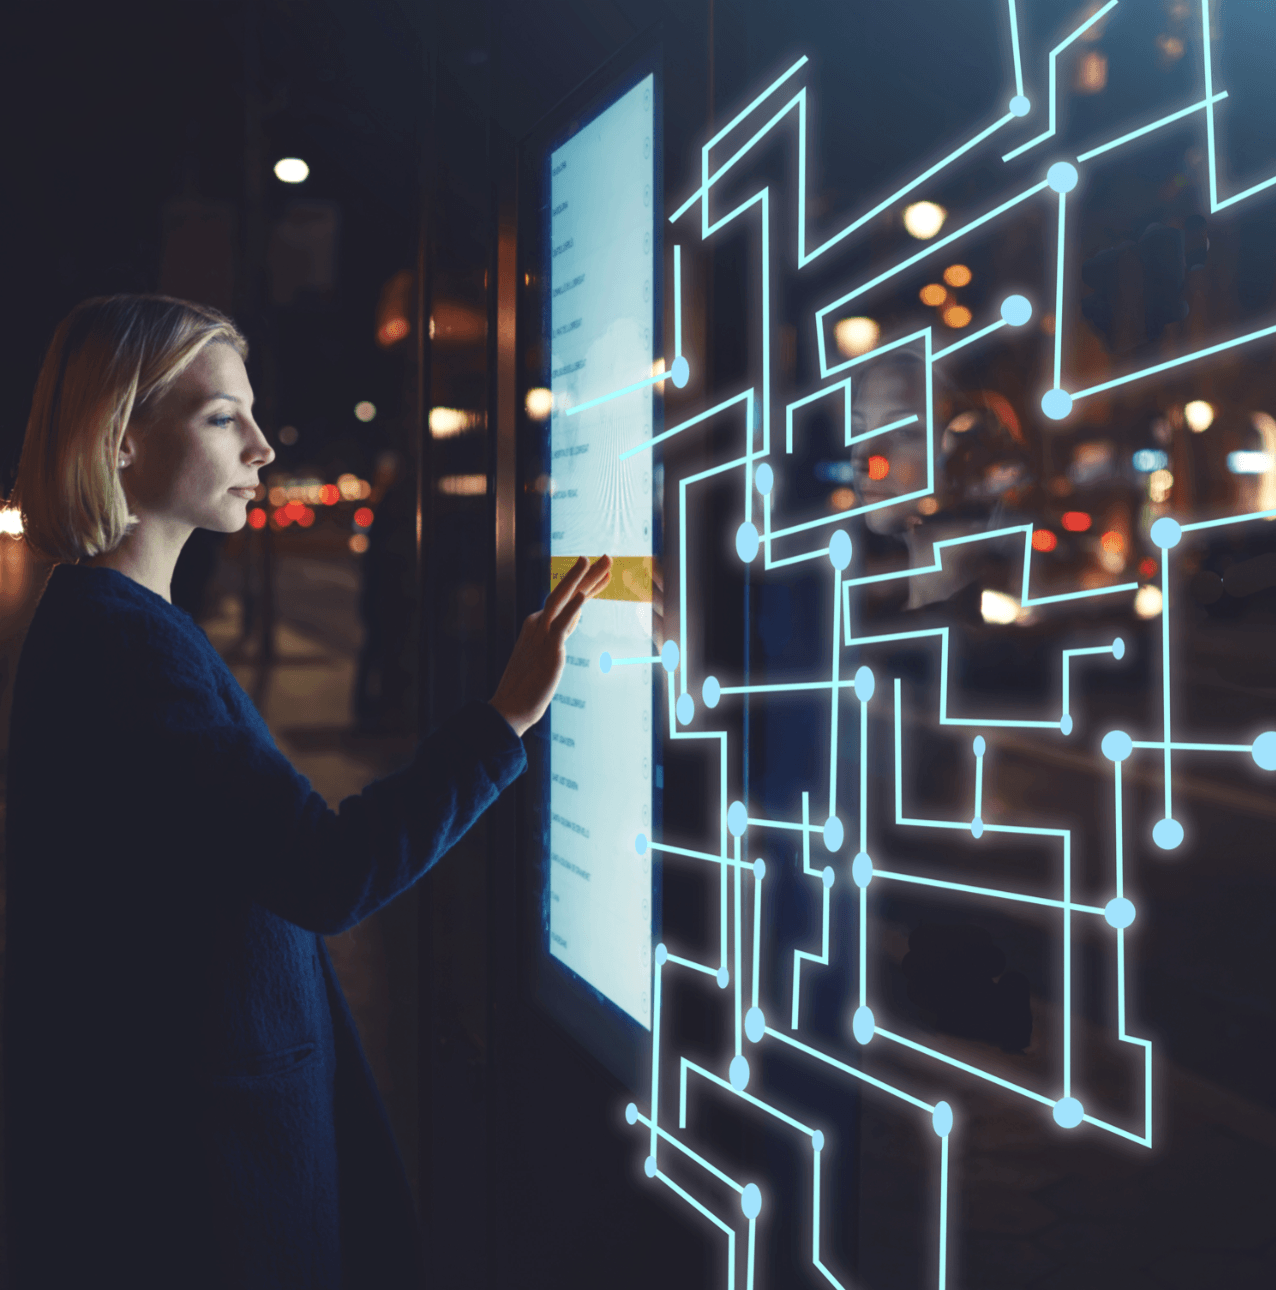 Woman interacting with a high-tech touch screen.